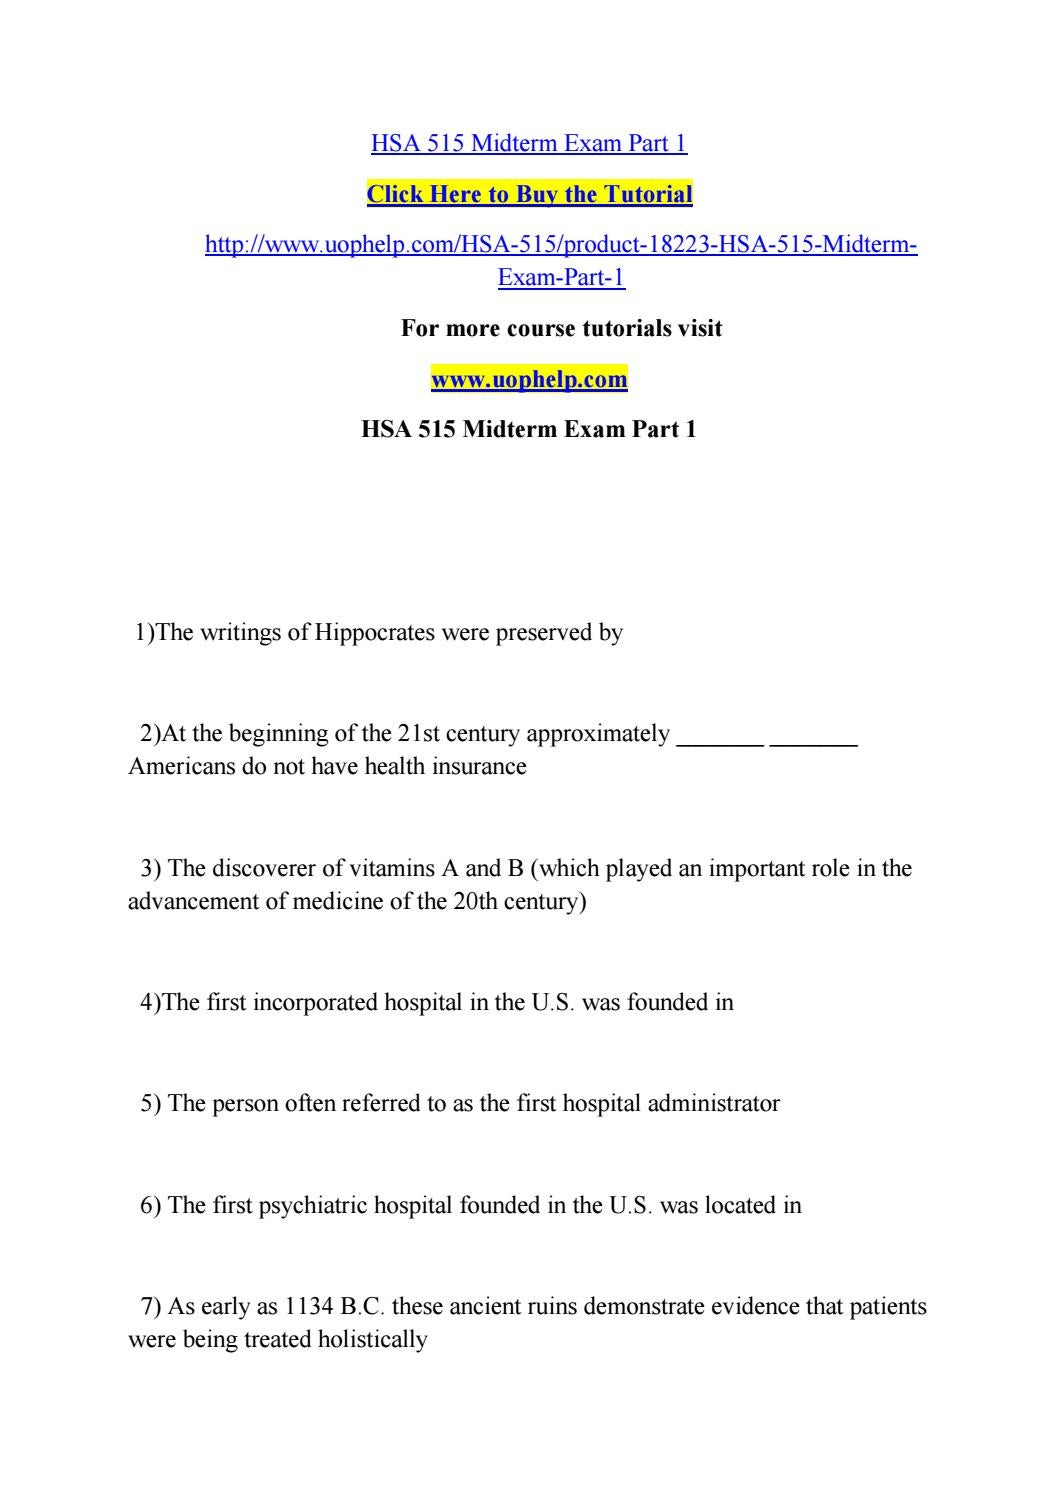 hsa 550 exam 1 Hsa 530 midterm exam 100% correct answers (1) the major piece of  midterm  exam question 1 eco 550 midterm exam all possible questions hsa 530 hsa 551.